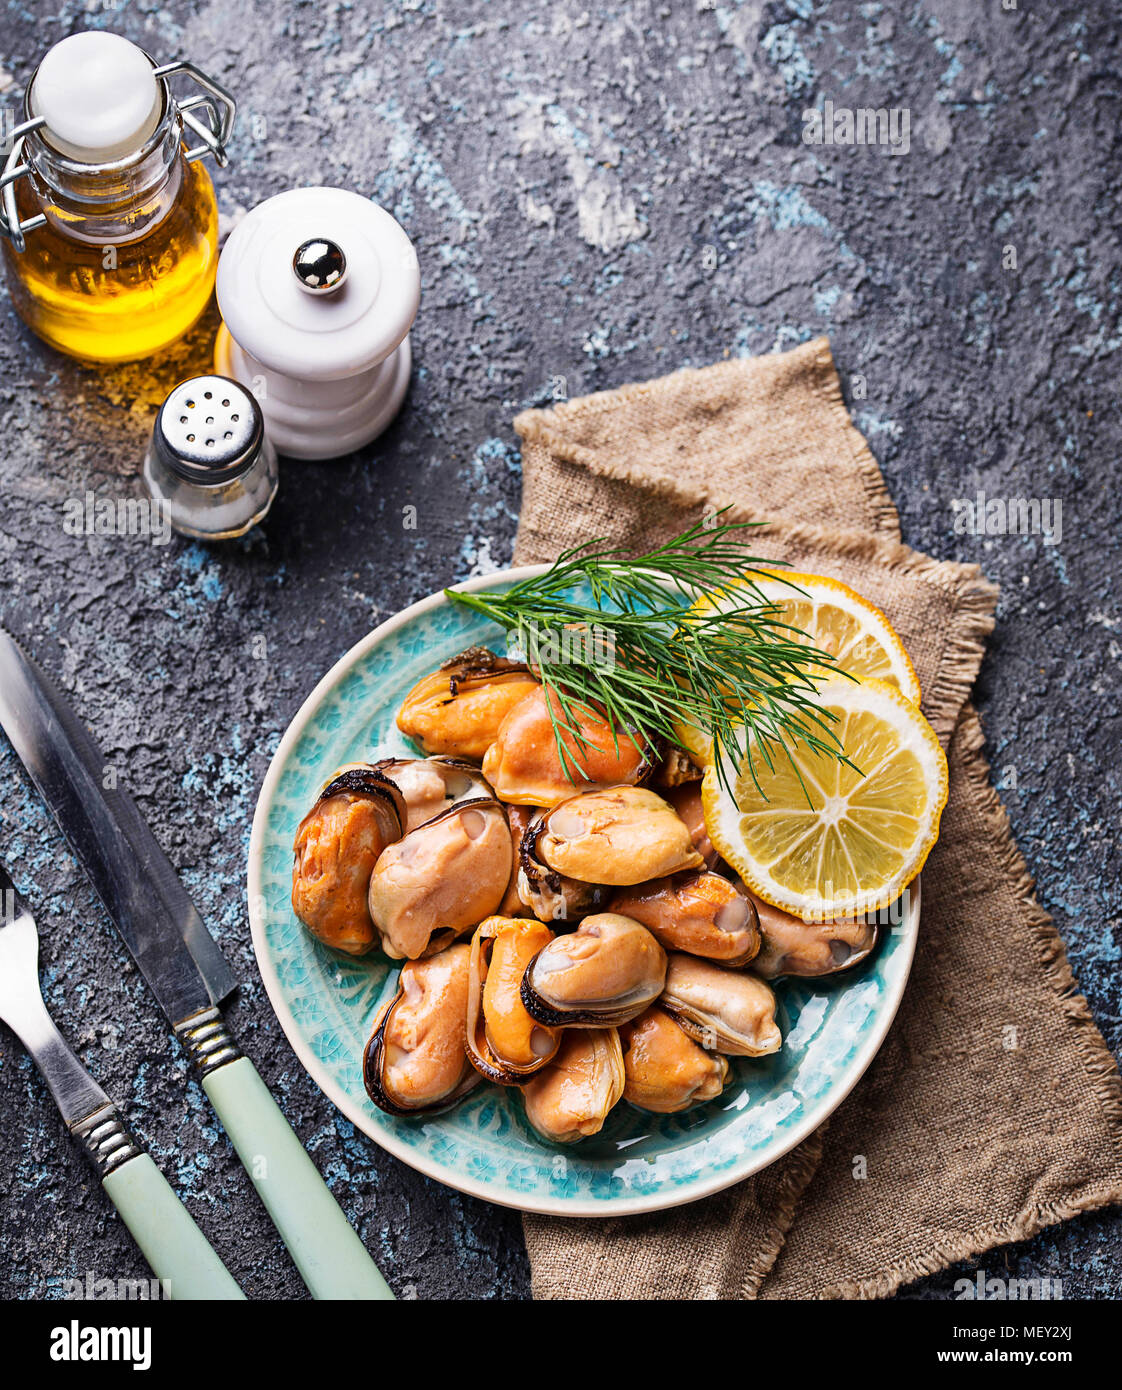 Marinated mussels with lemon and spices - Stock Image